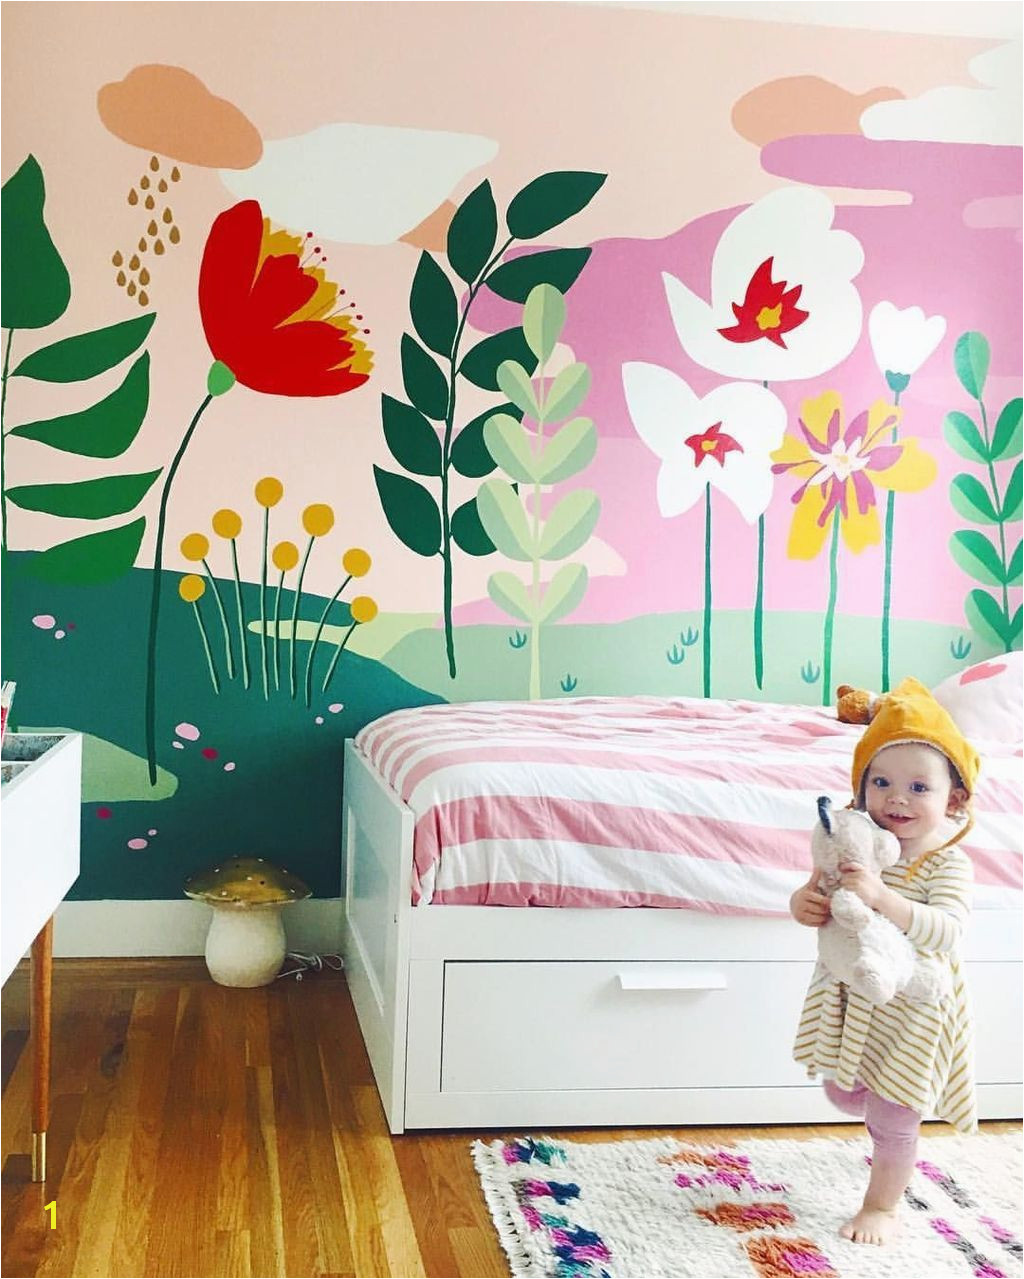 Nice 20 Easy Playroom Mural Design Ideas For Kids More at s